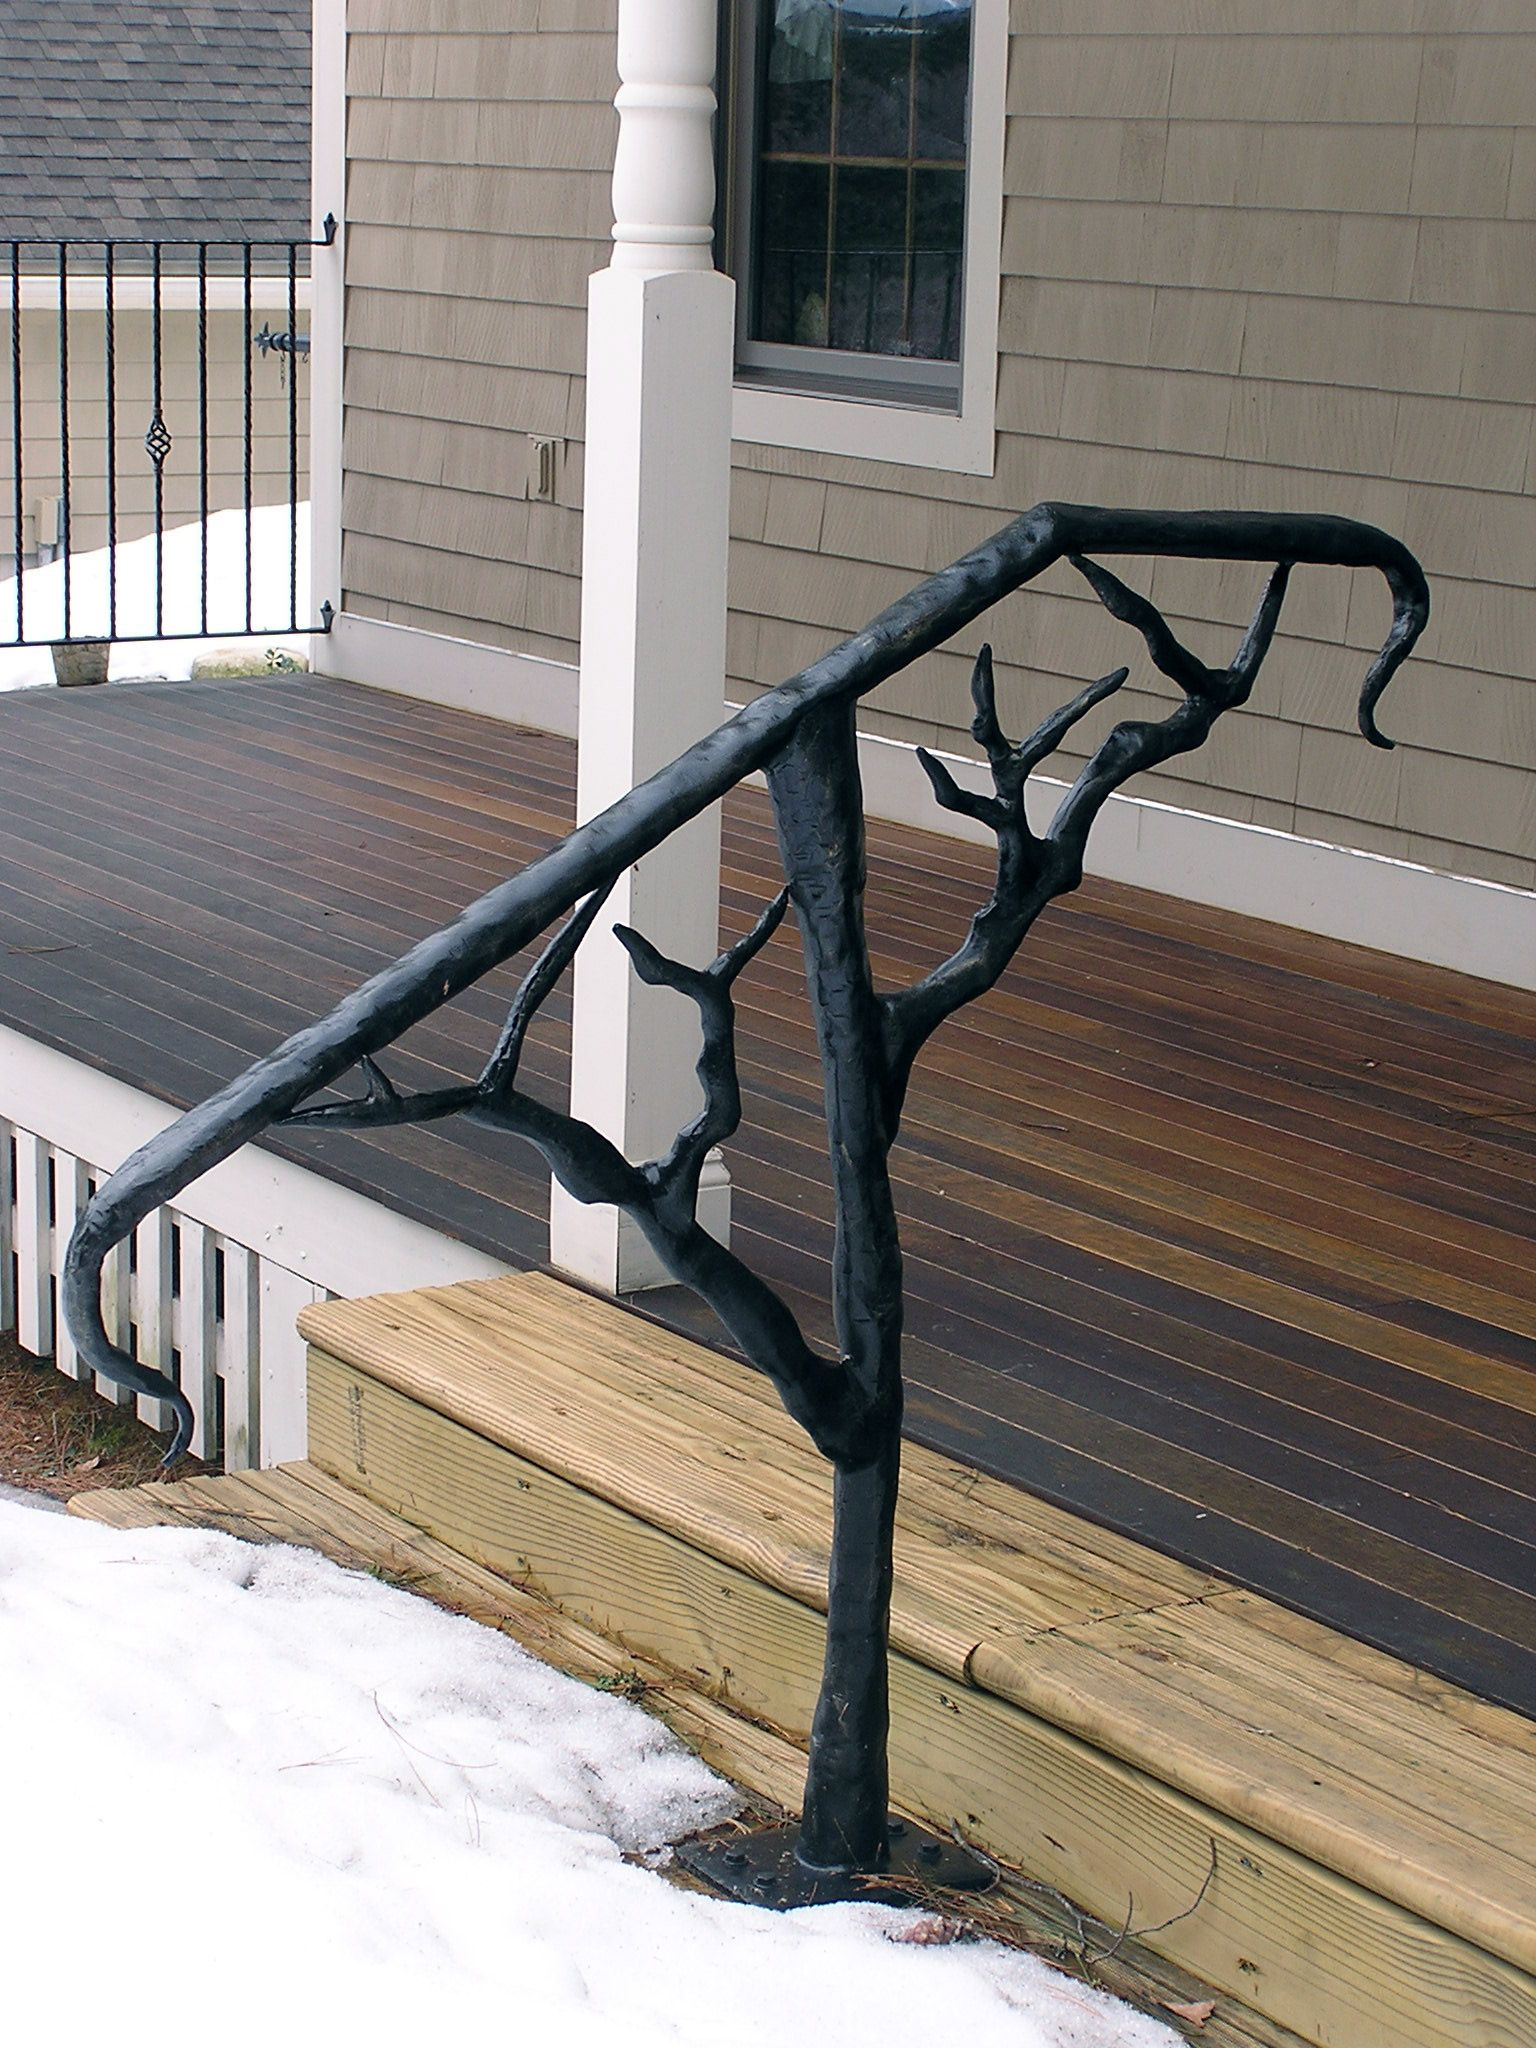 Tree handrail garage conversions pinterest - Exterior wrought iron handrails for steps ...